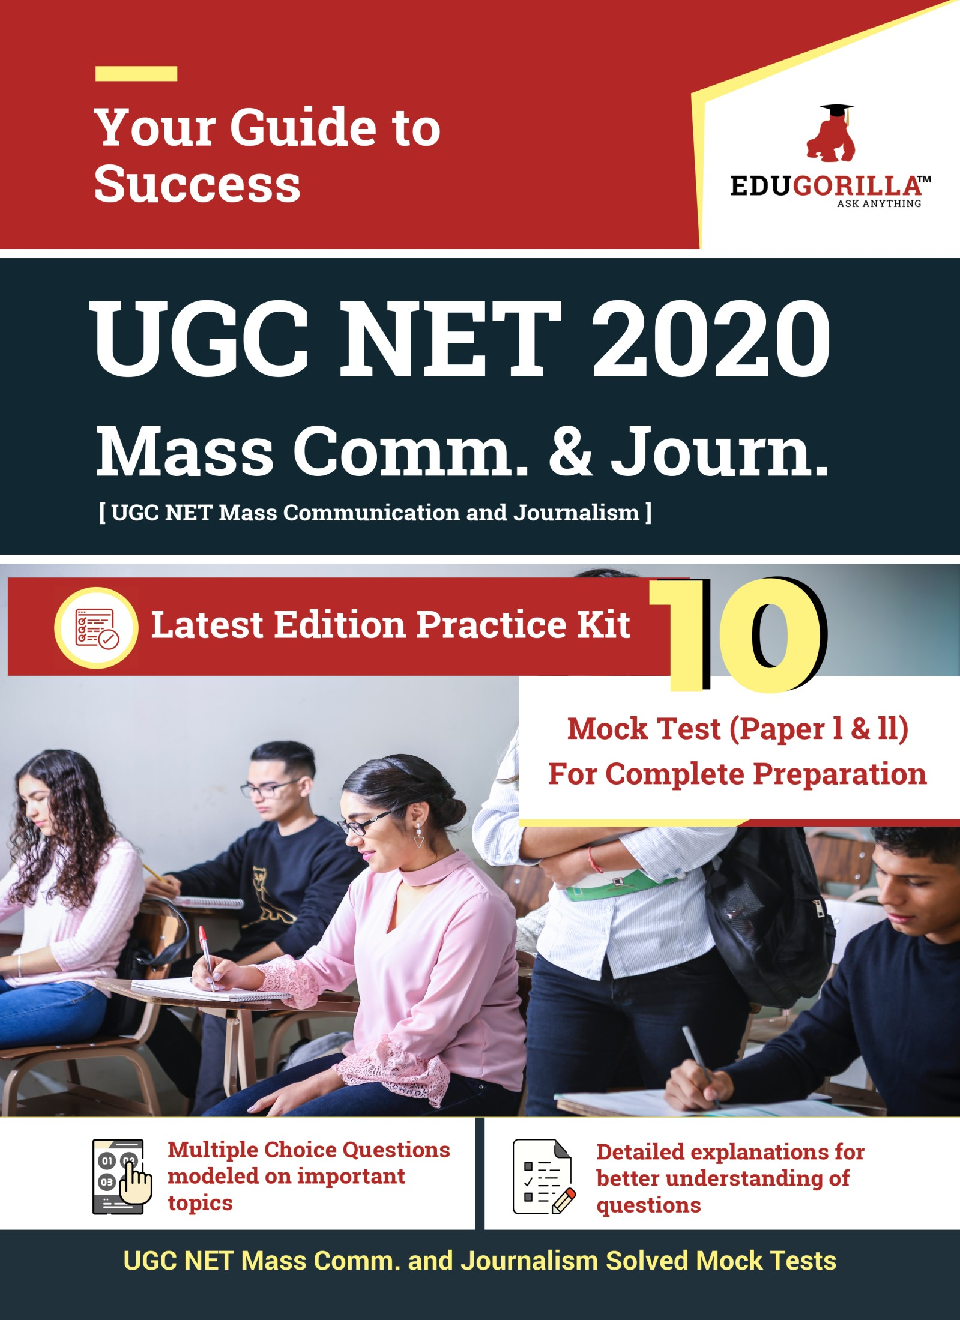 Edugorilla UGC NET Mass Communication and Journalism 2020 | 10 Full-length Mock Test For (Paper l & Paper ll) - Page 1